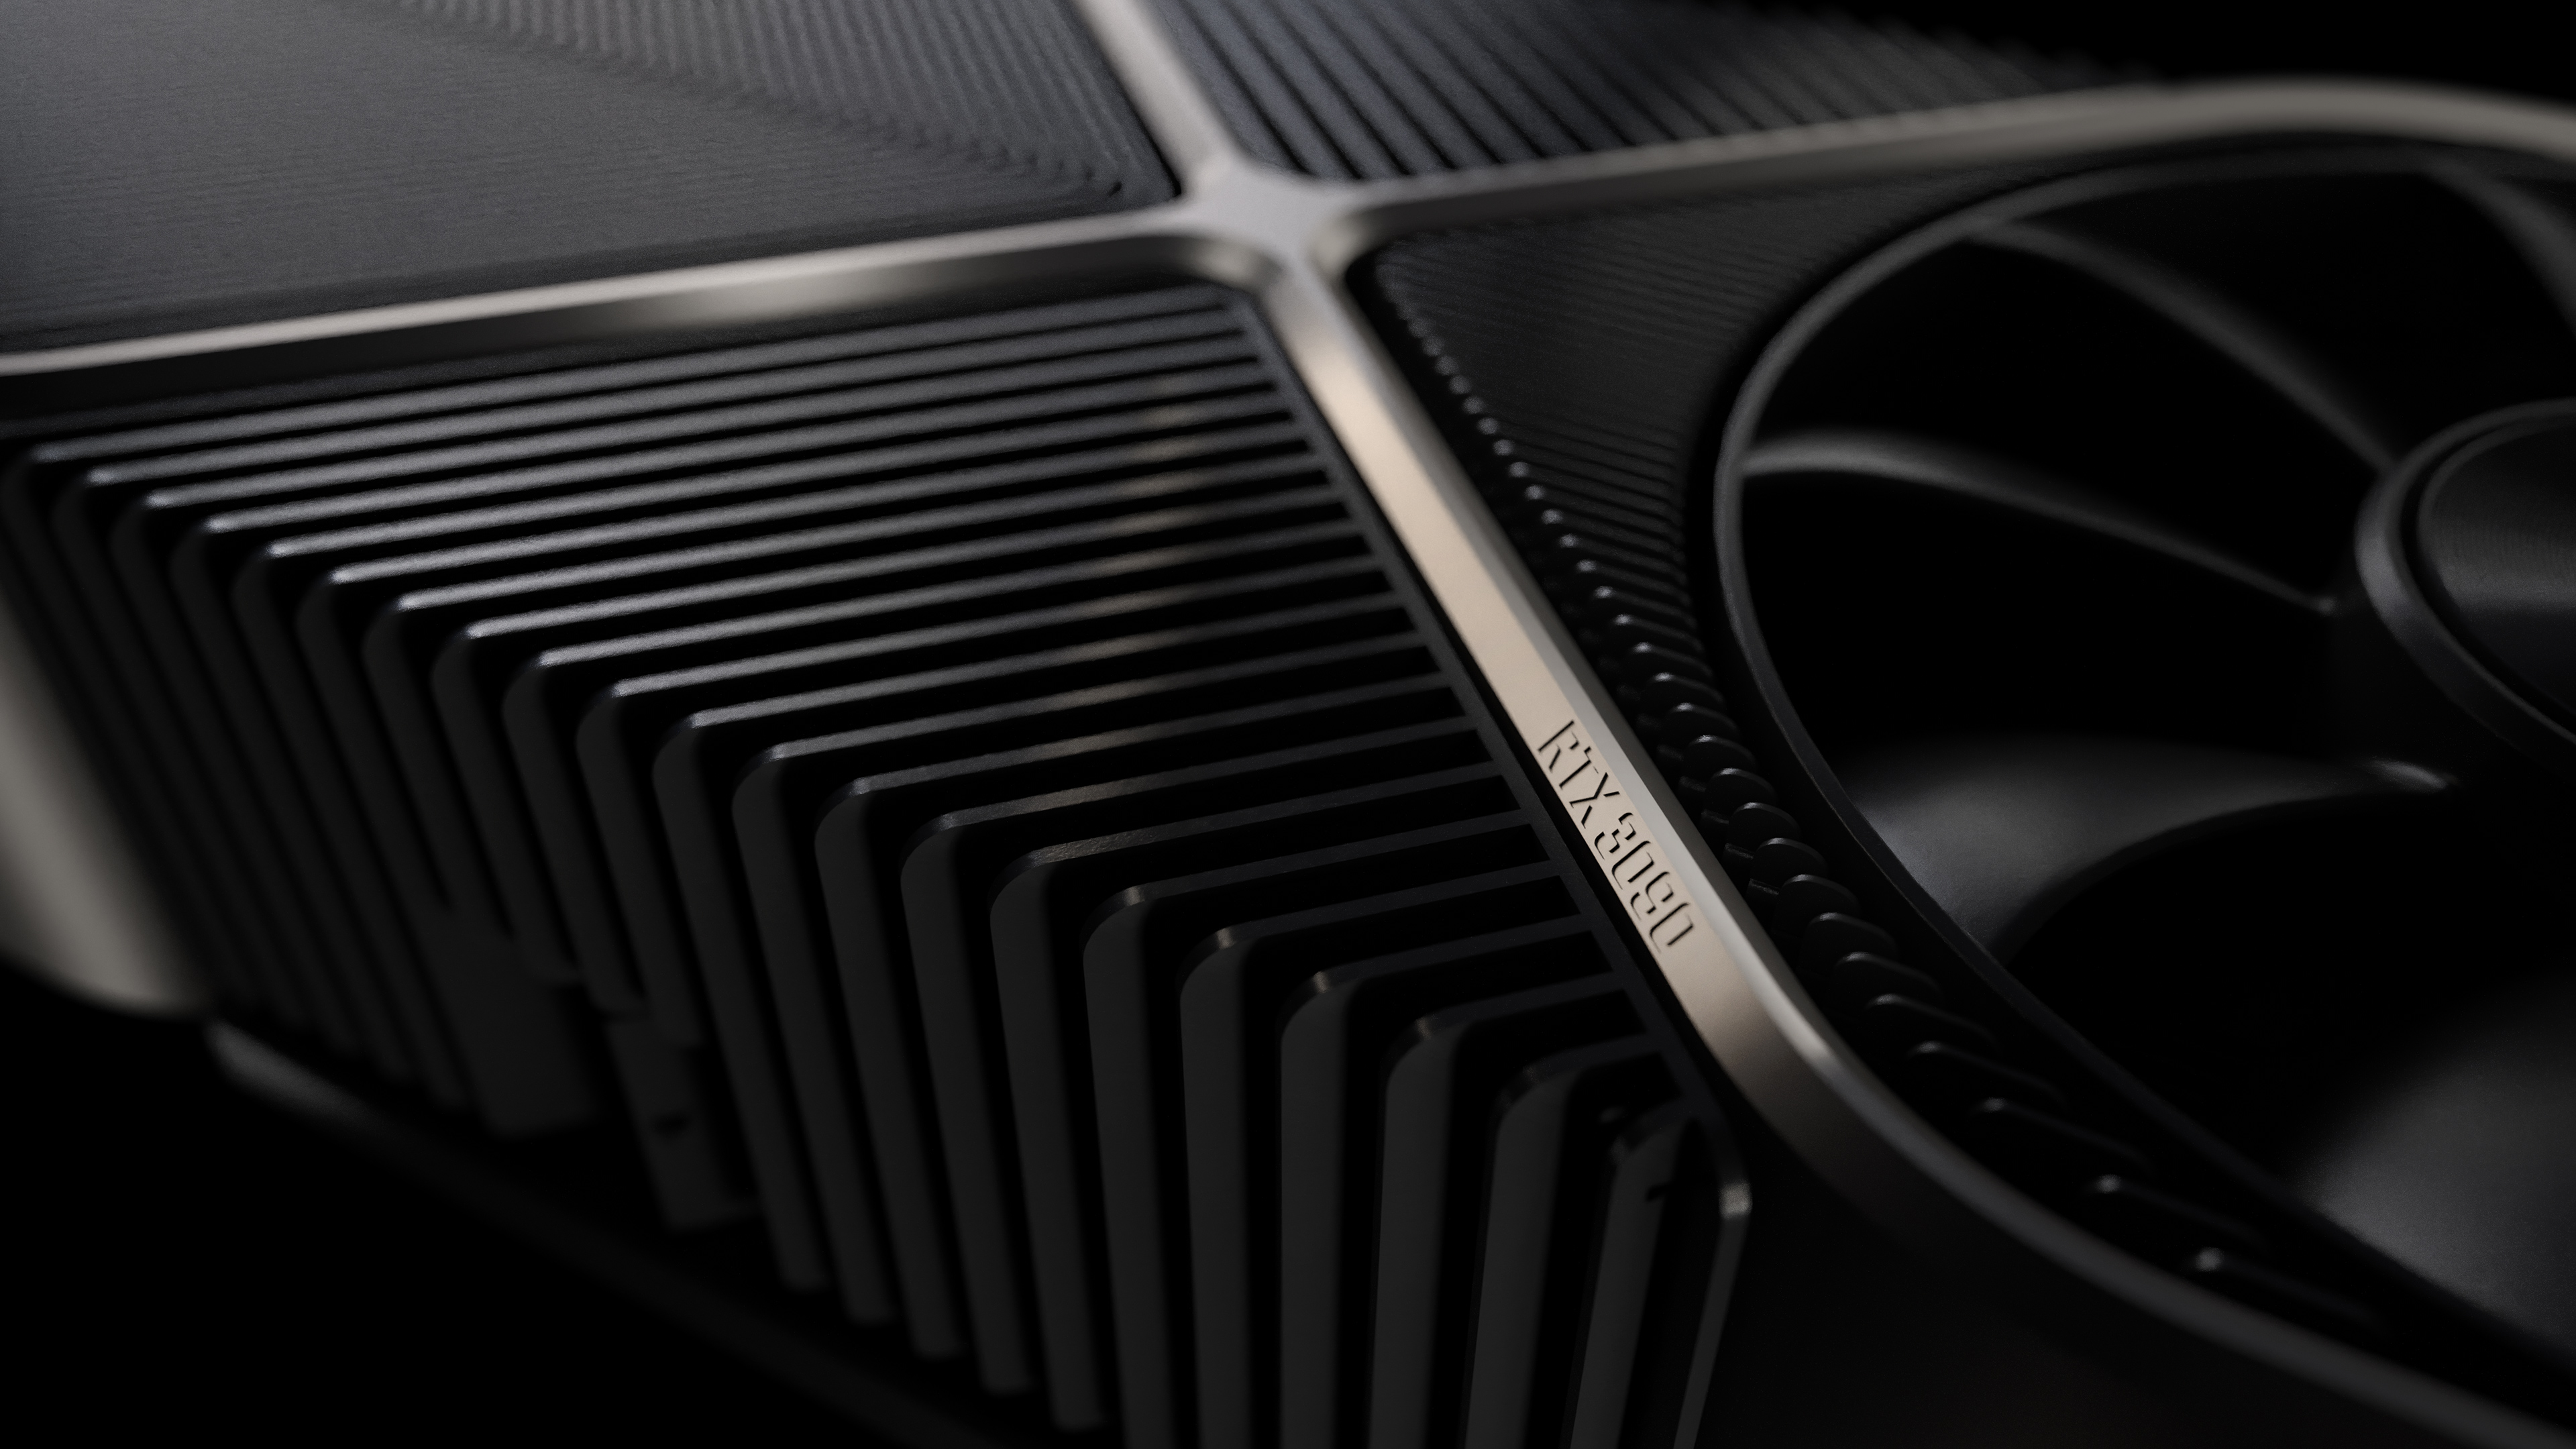 geforce rtx 3090 product gallery full screen 3840 3.'